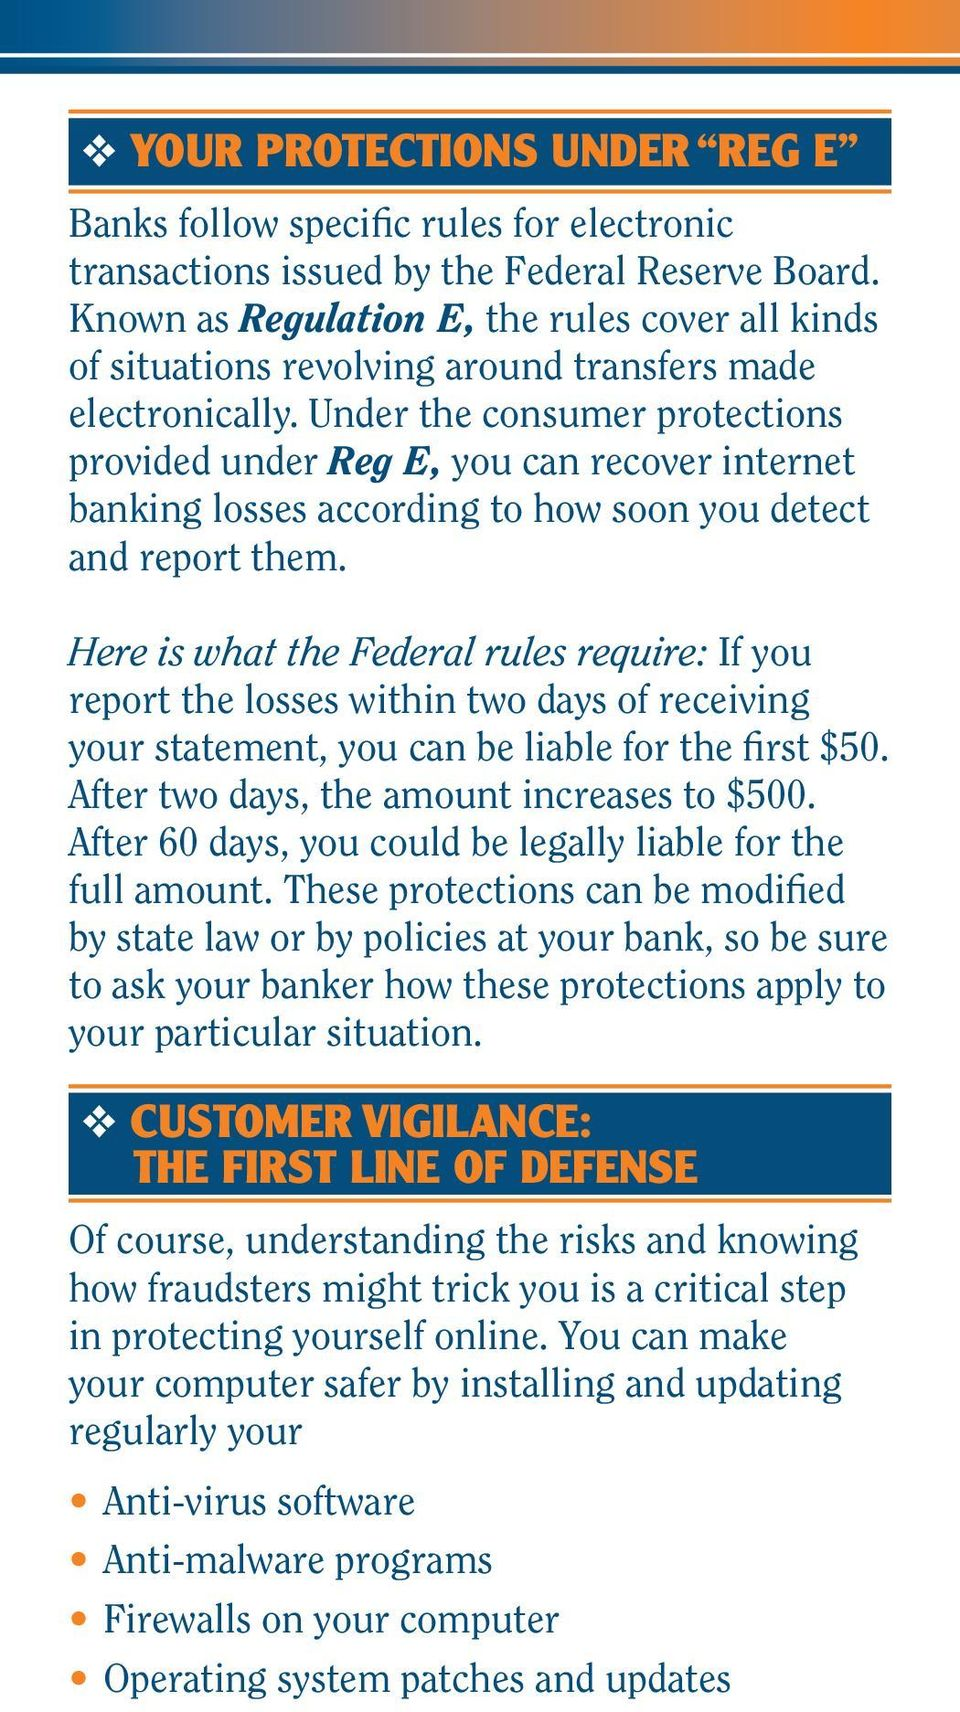 Under the consumer protections provided under Reg E, you can recover internet banking losses according to how soon you detect and report them.